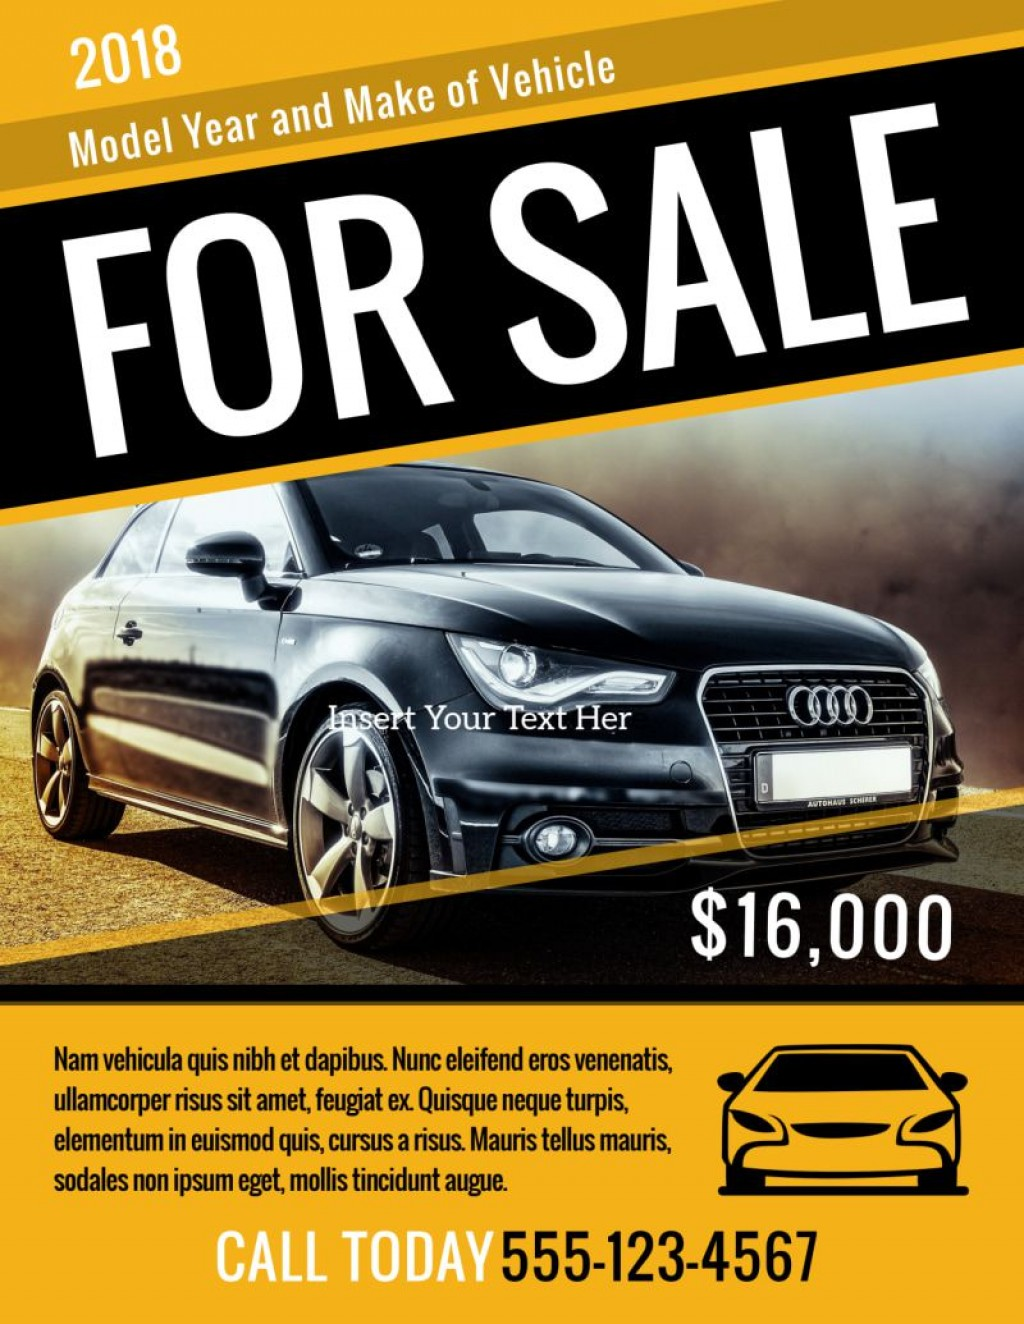 005 Fearsome Car For Sale Template Image  Sign Word Bill Of UkLarge